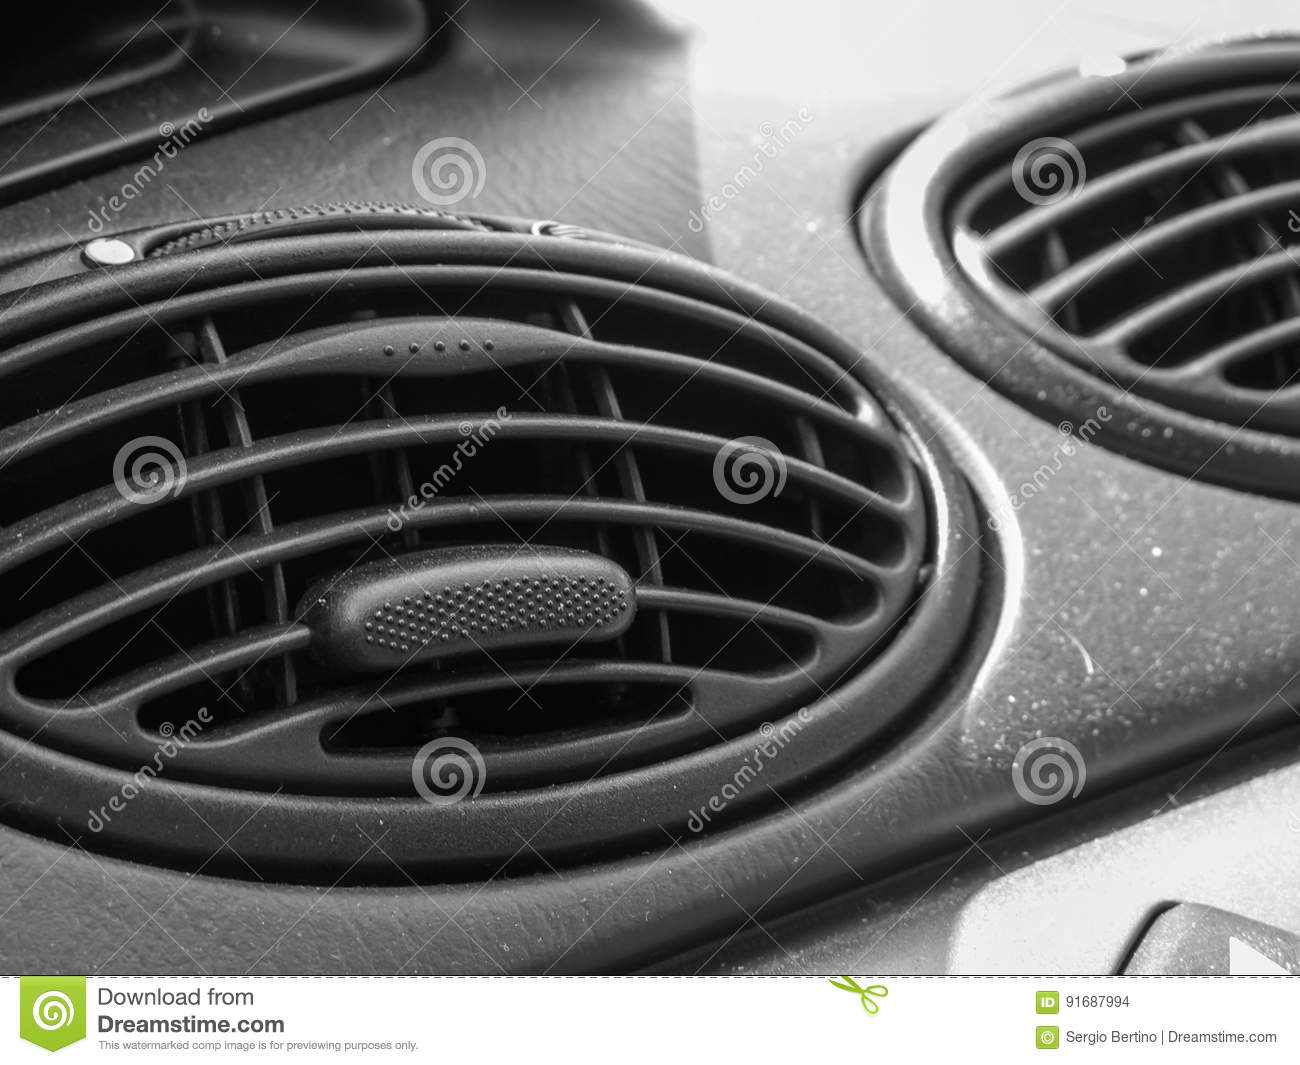 Air vents on the dashboard of a car